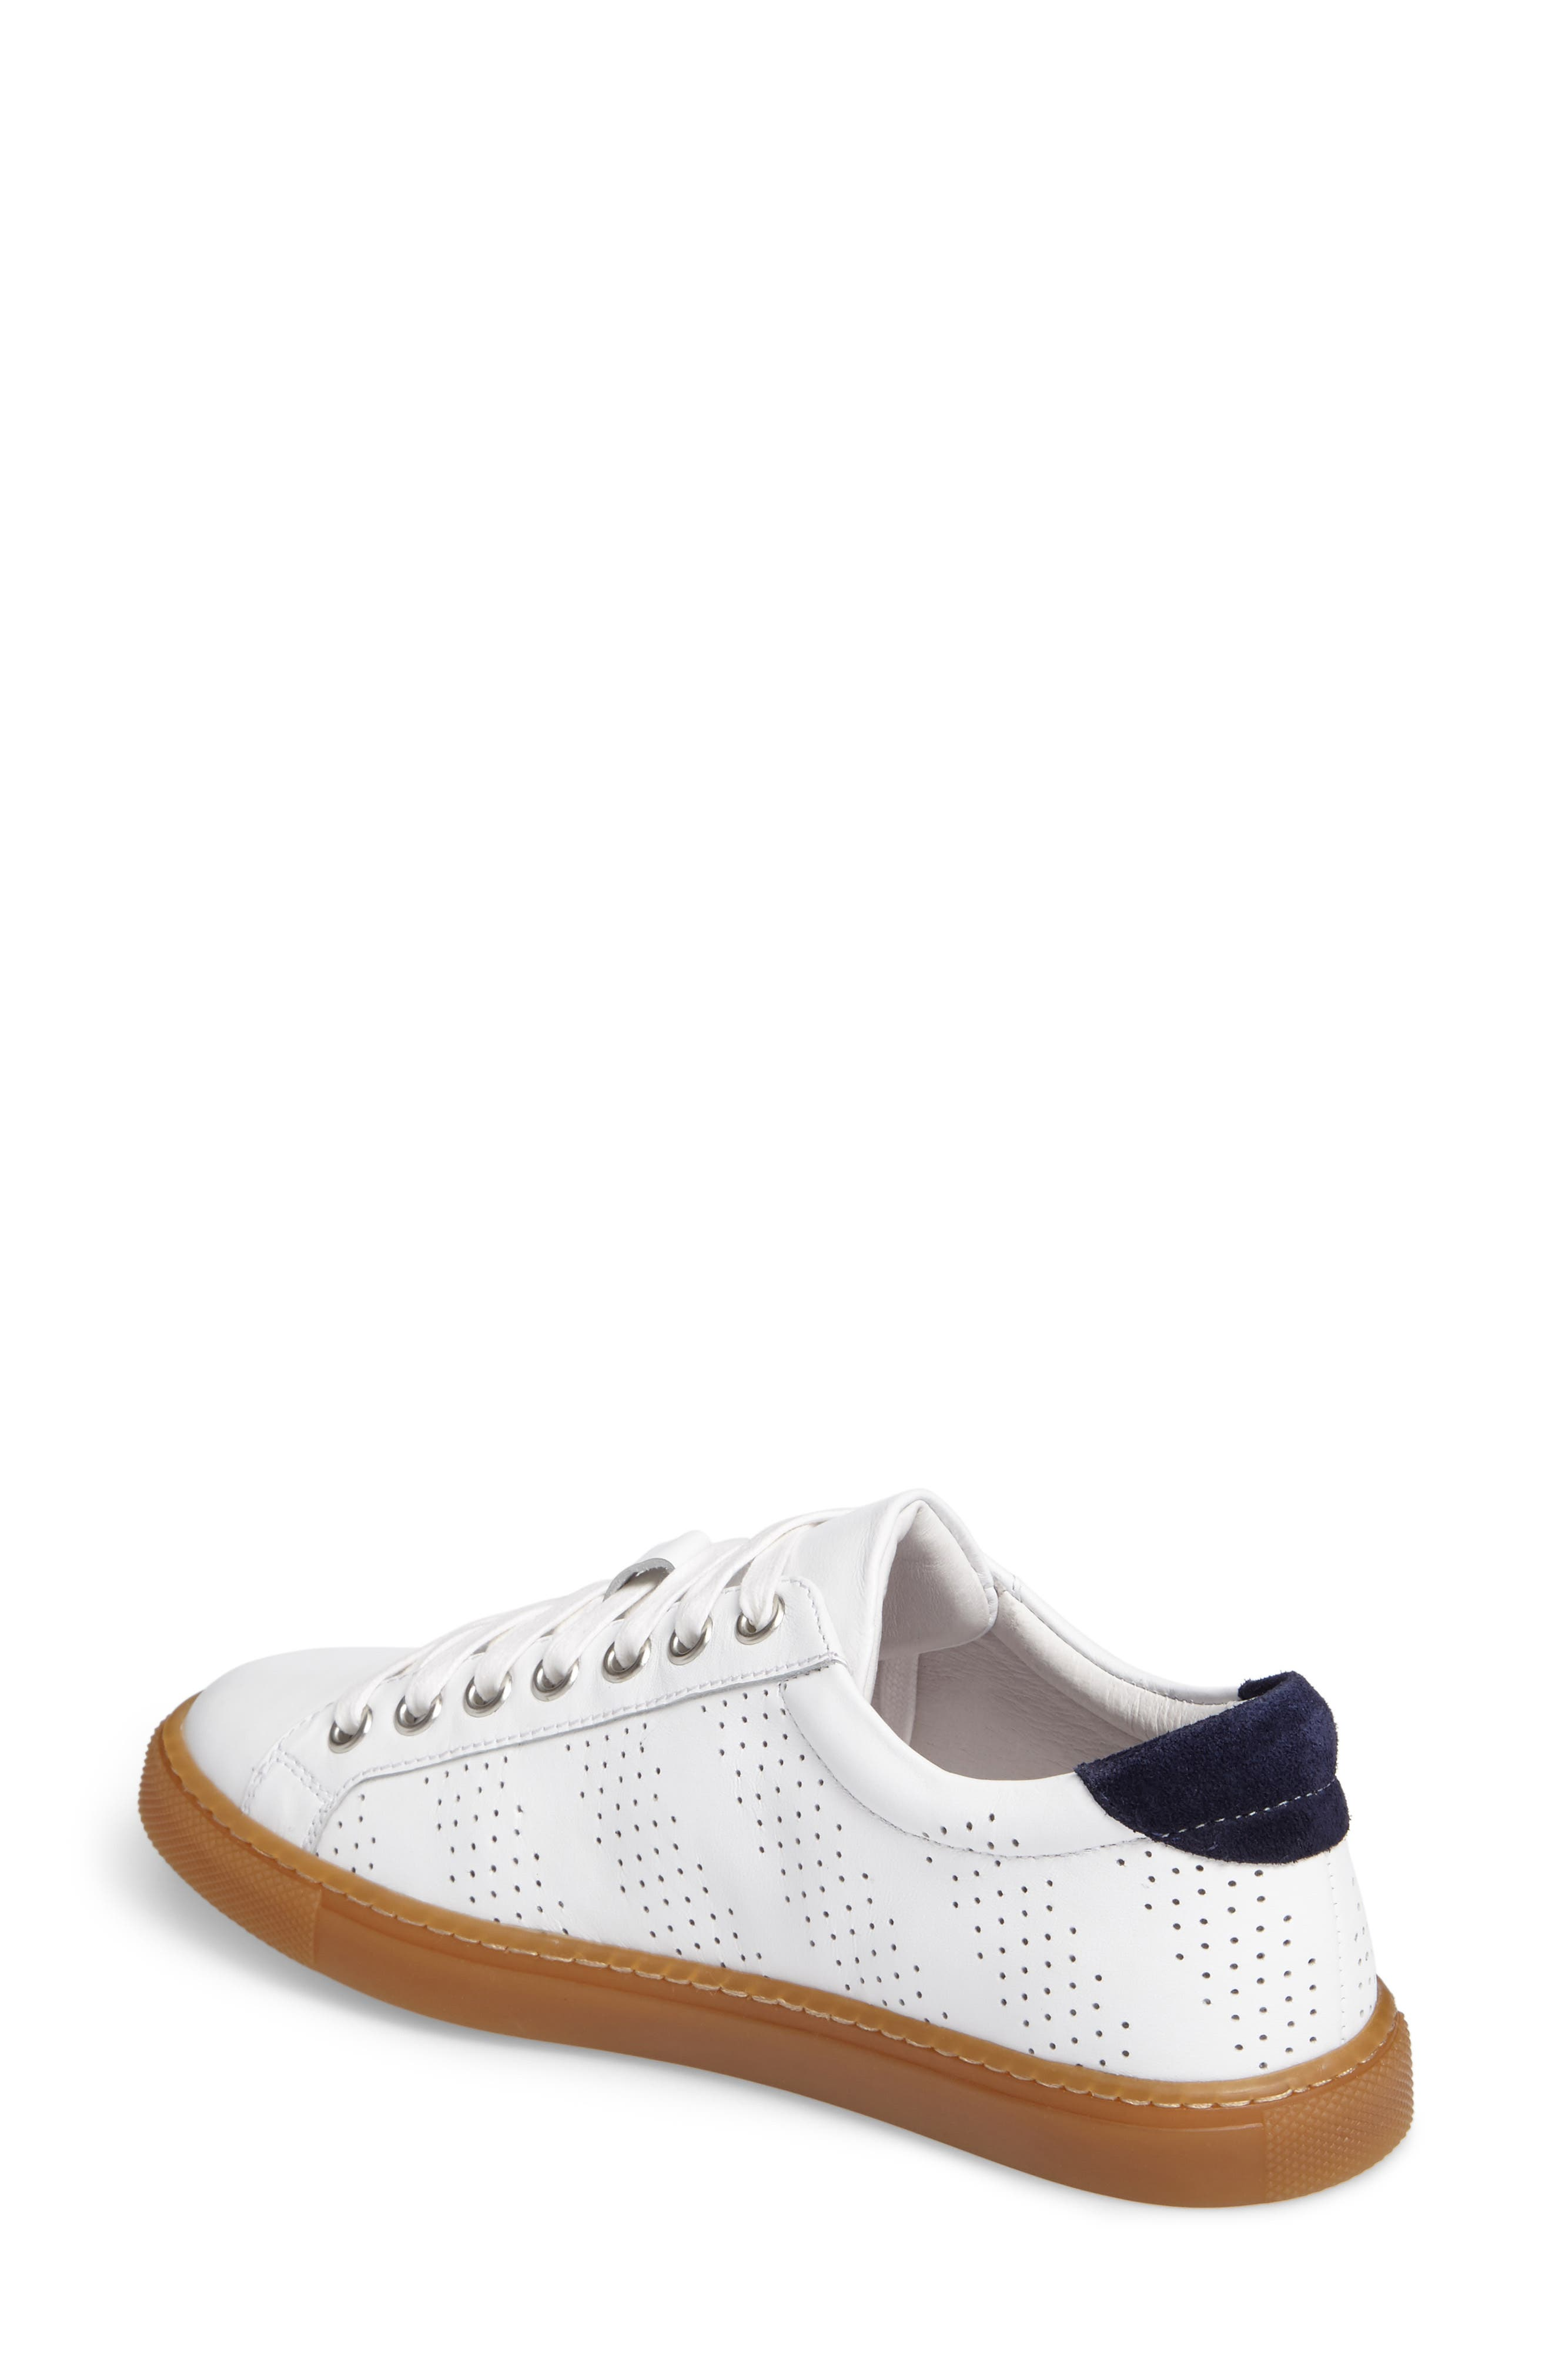 Alternate Image 2  - Treasure & Bond Merrick Perforated Sneaker (Women)